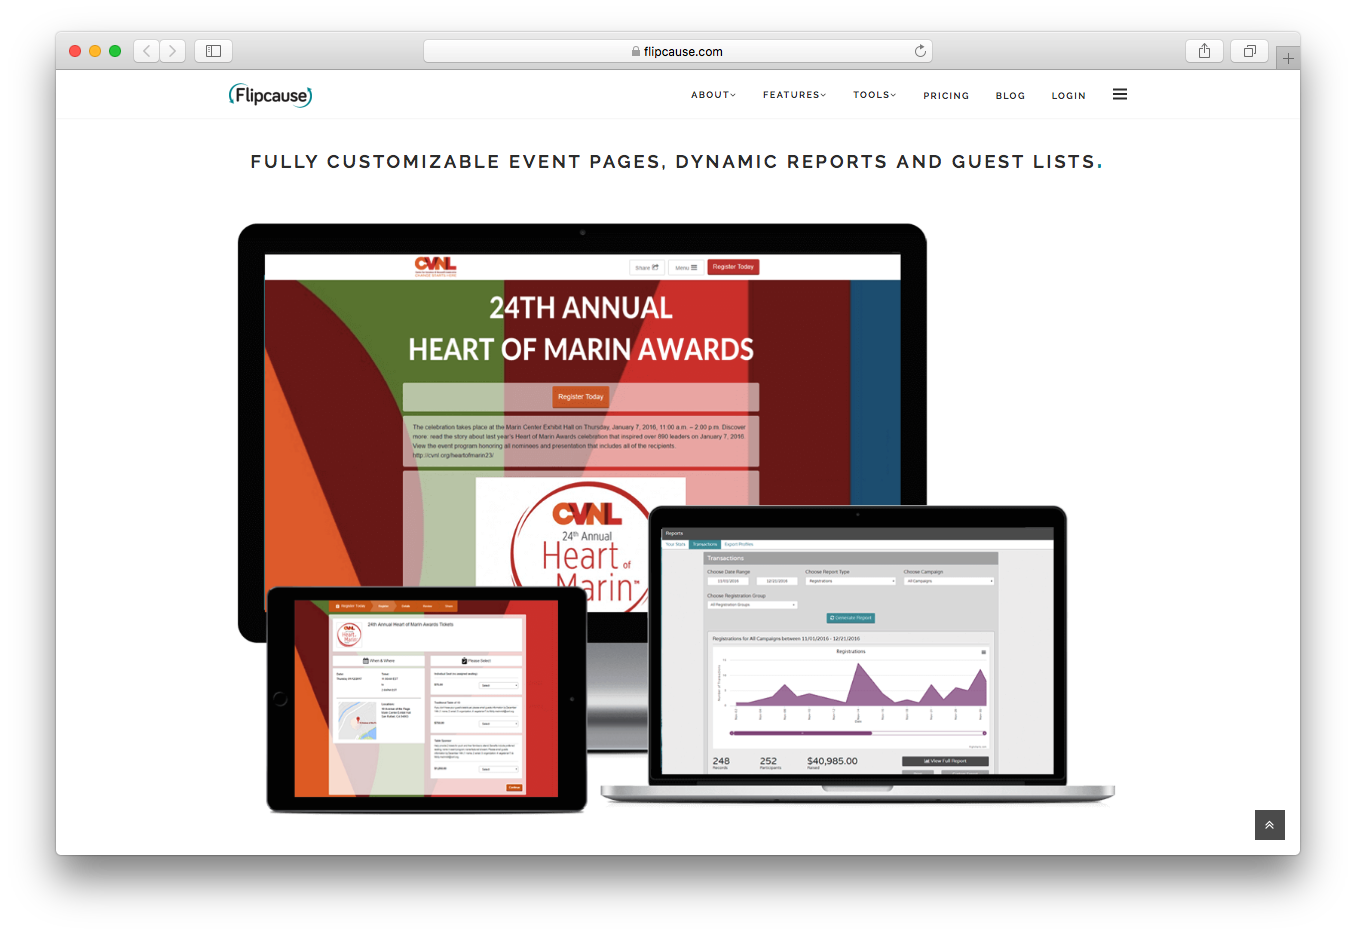 Flipcause events customizable pages dynamic reports guest lists